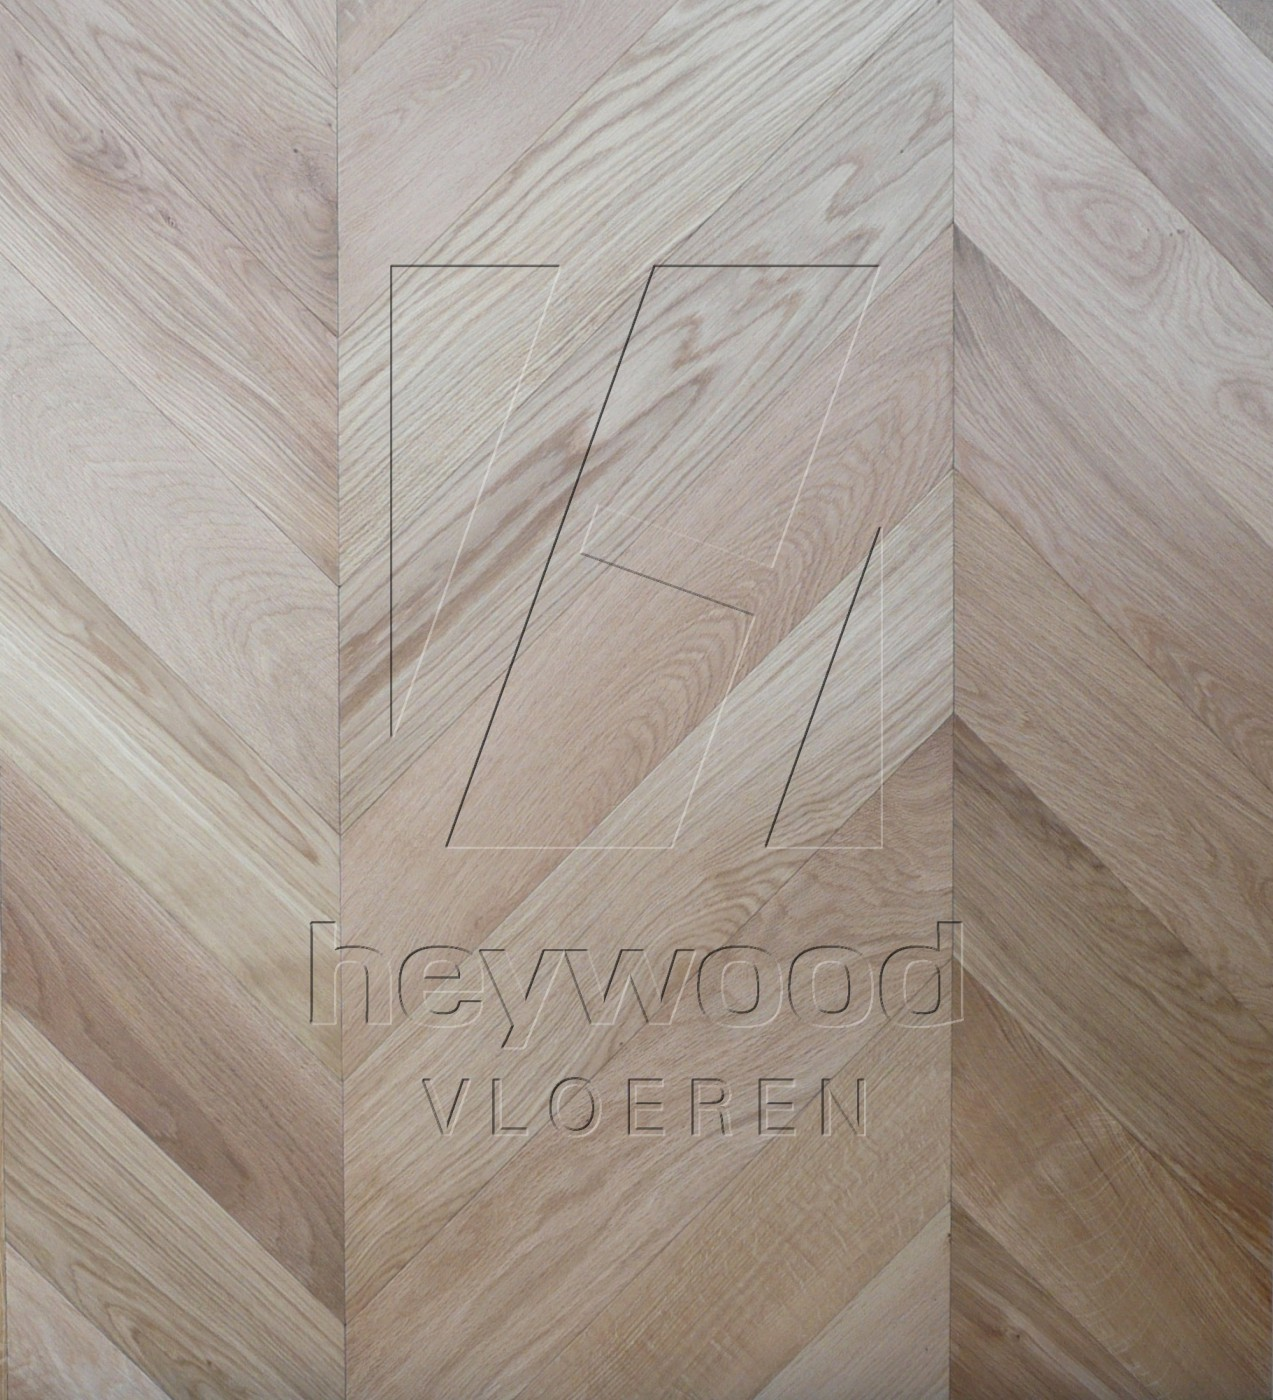 Chevron Oak Elegance Osmo oiled in Chevron of Pattern & Panel Floors